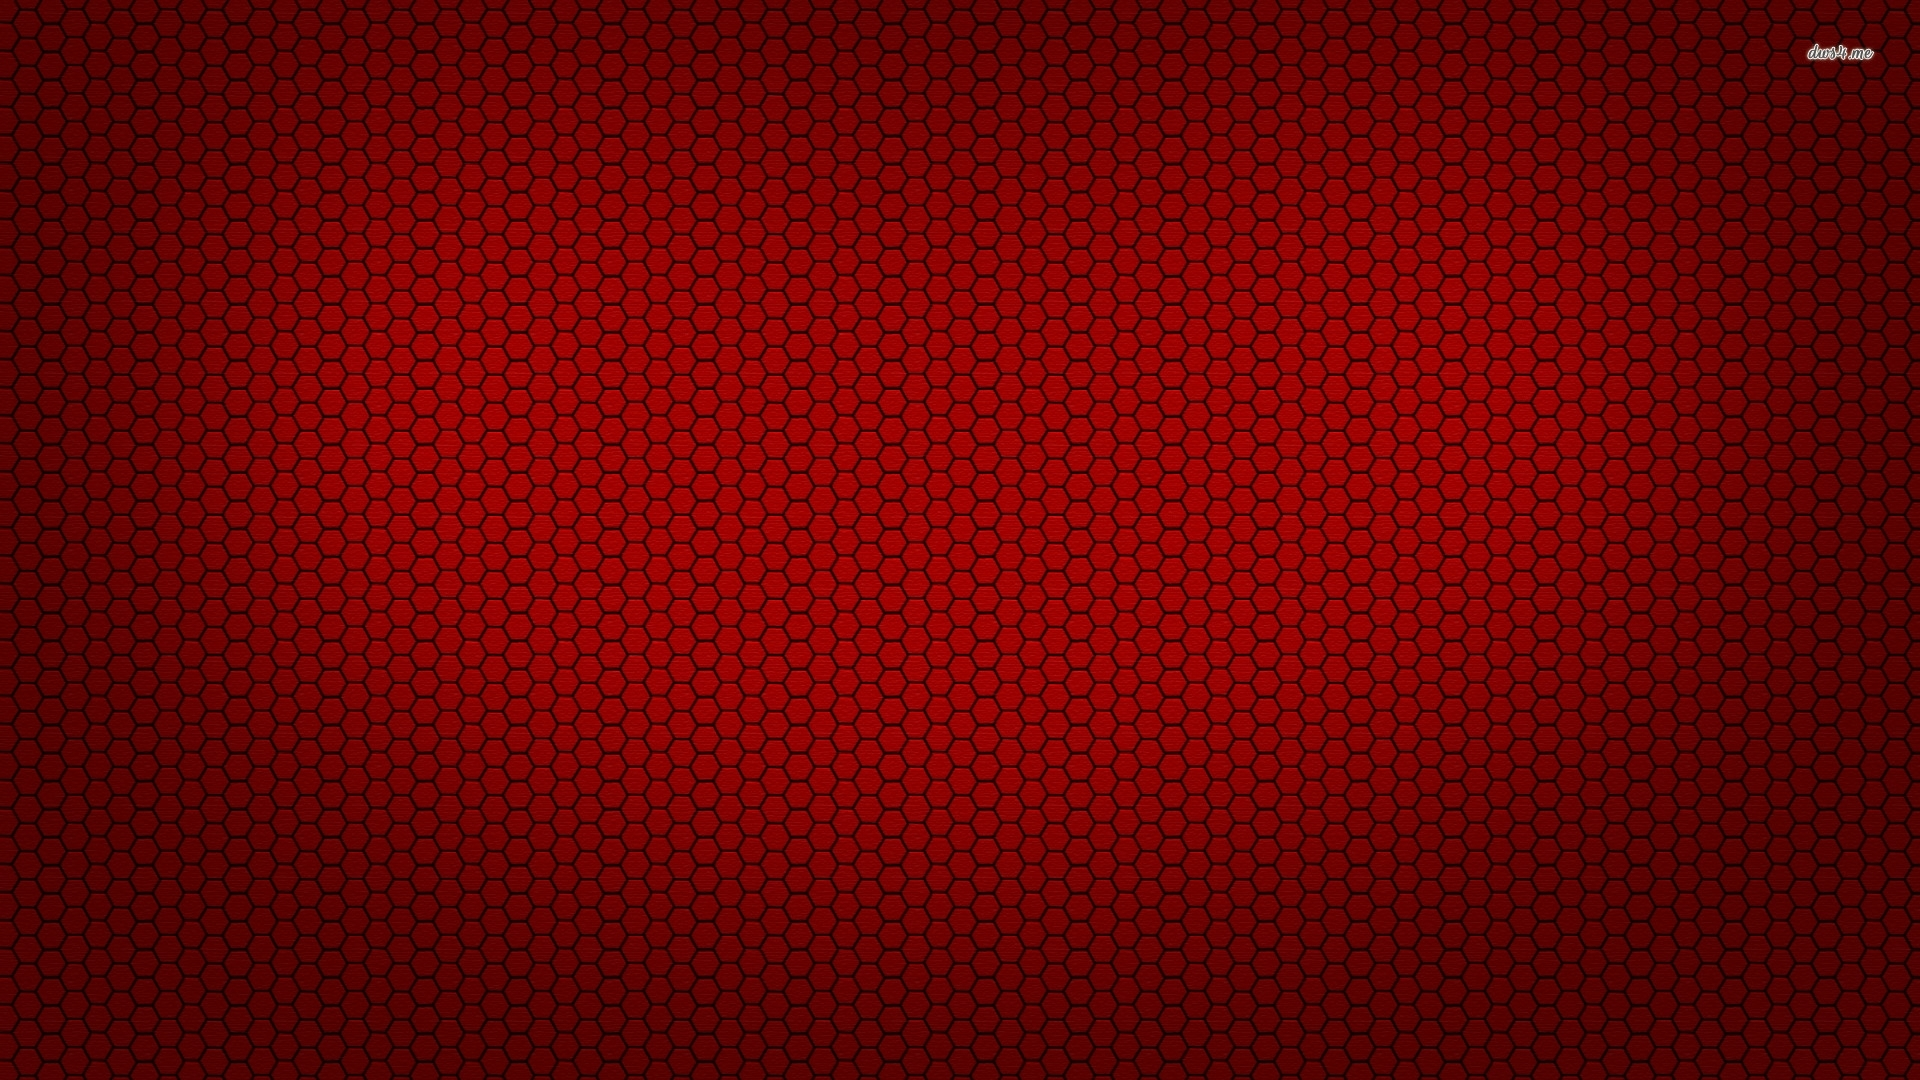 4k carbon fiber wallpaper (71+ images)